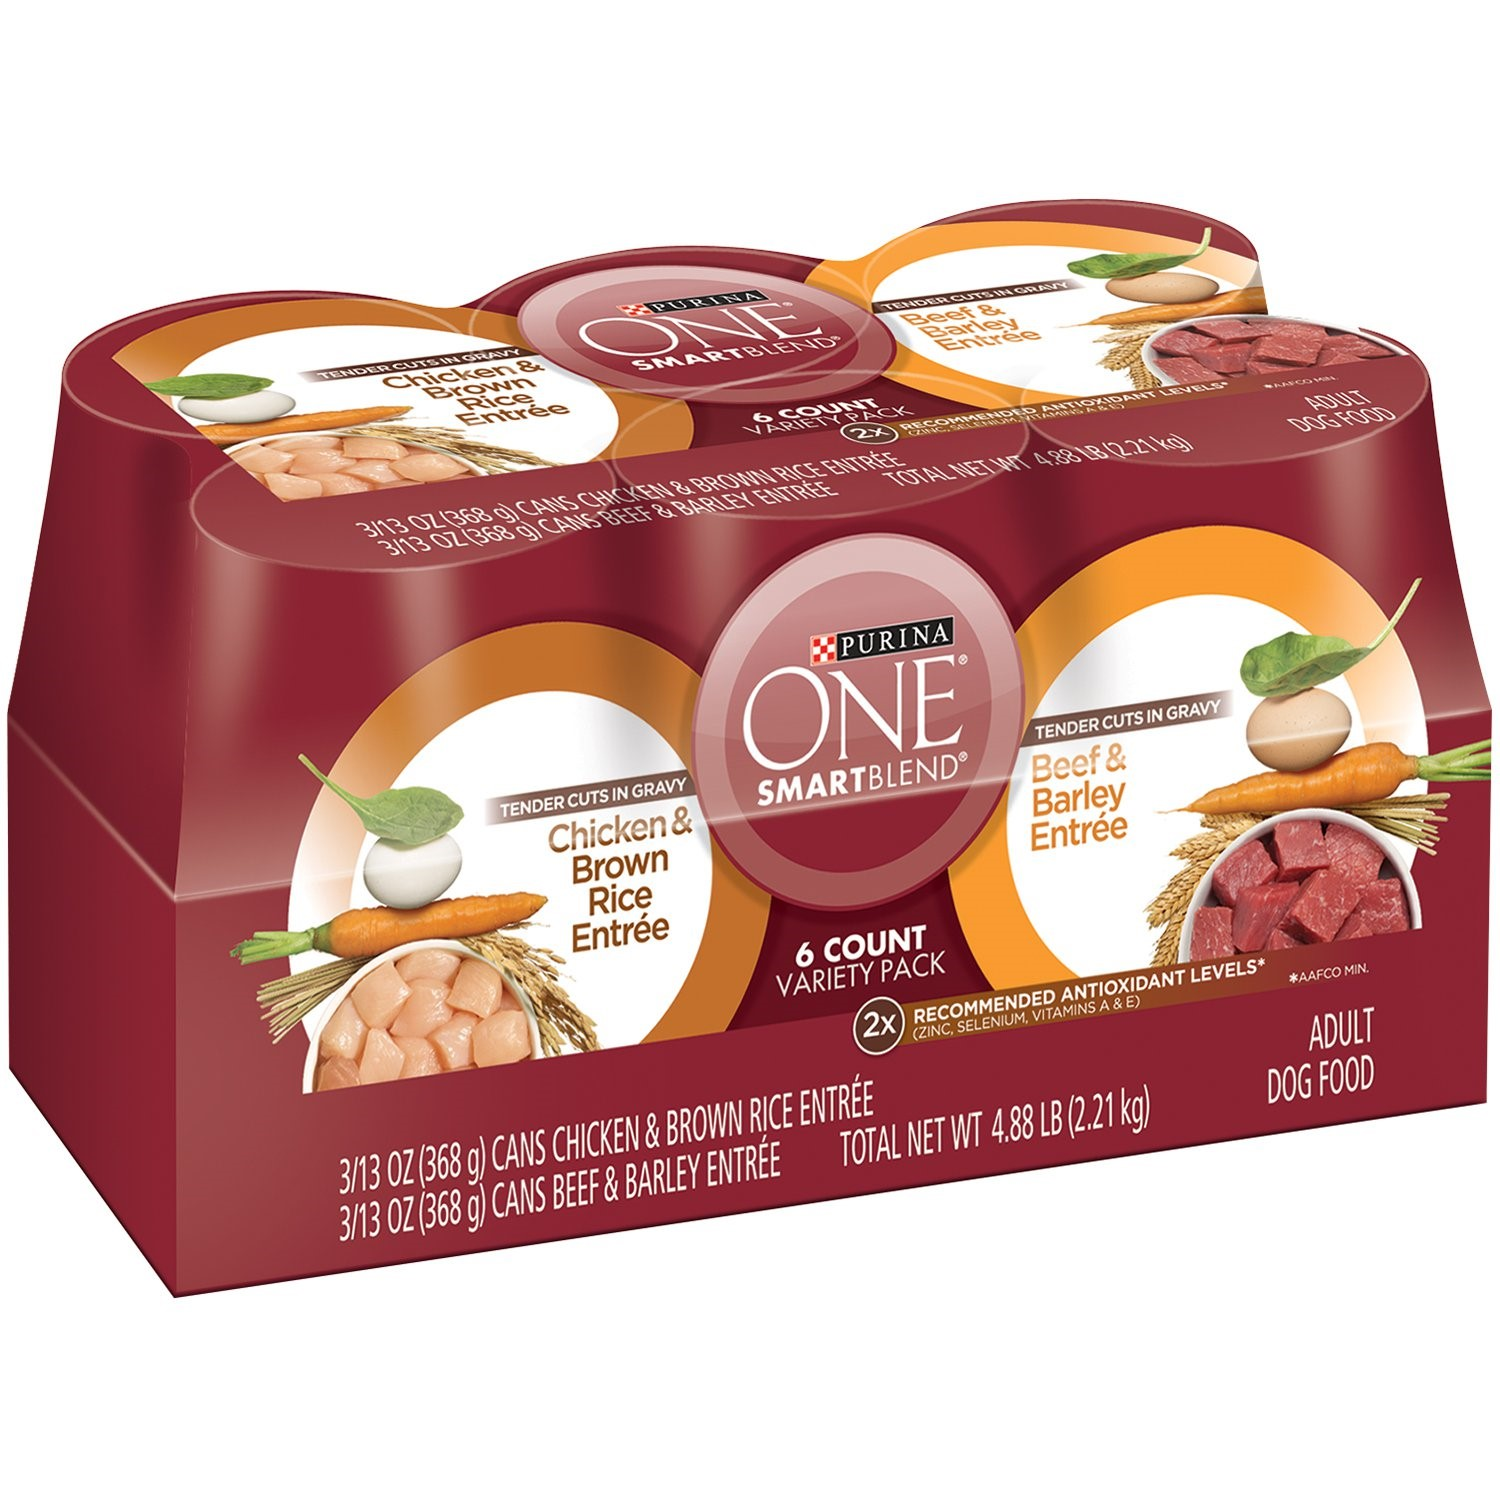 Purina ONE SmartBlend Tender Cuts Adult Dog Food Variety Pack 6-13 oz. Cans